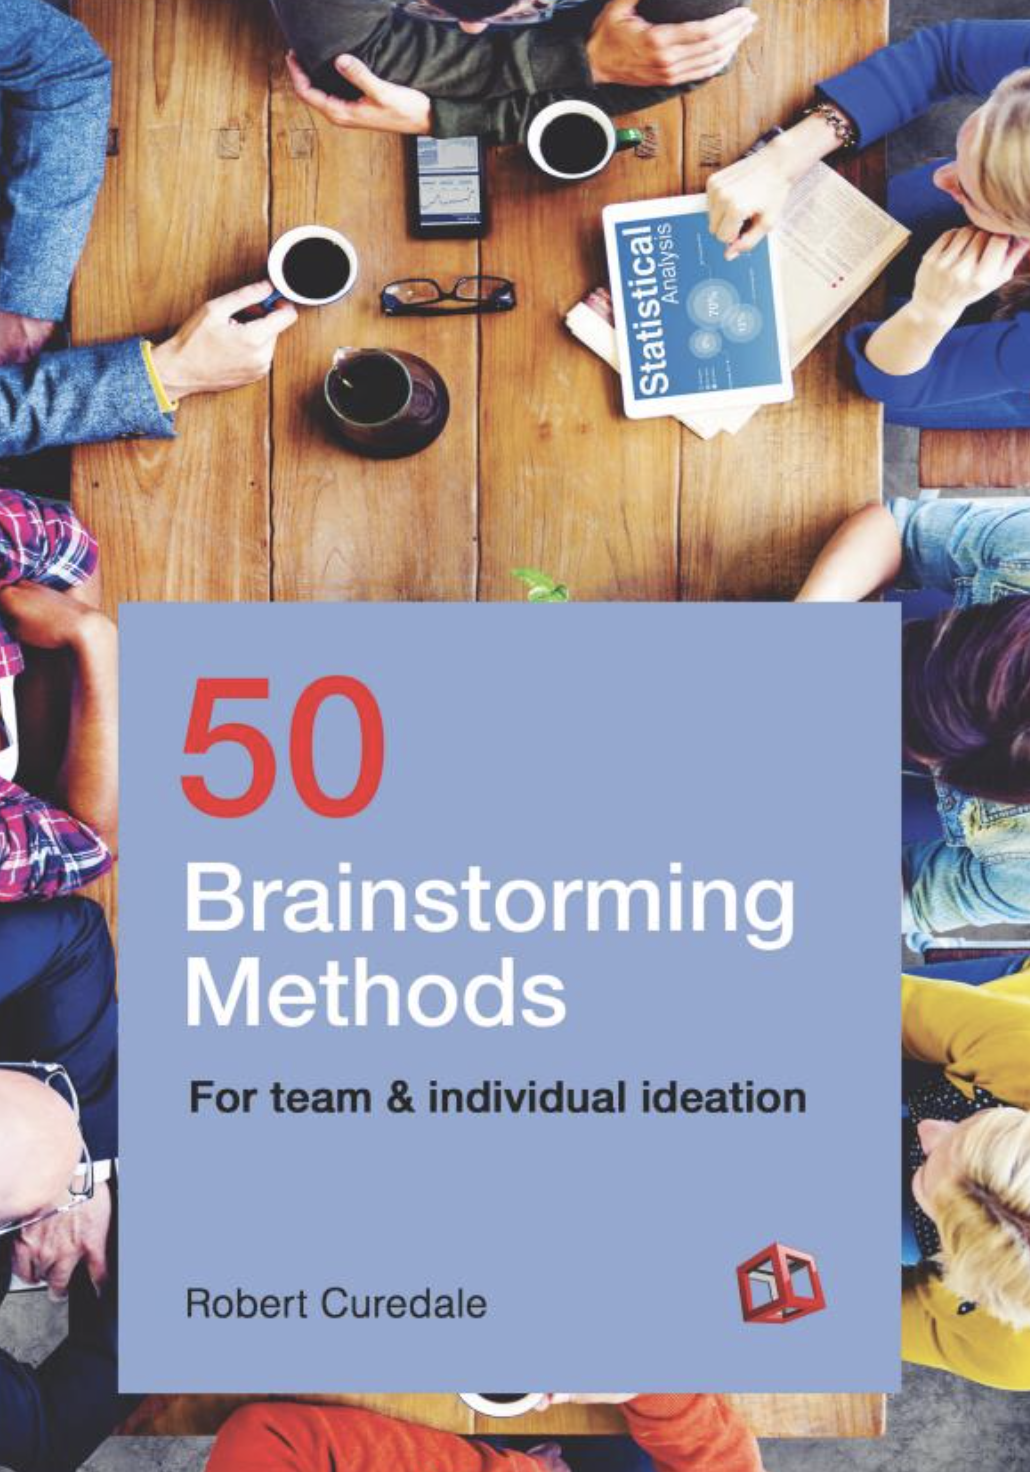 50 brainstorming methods book cover